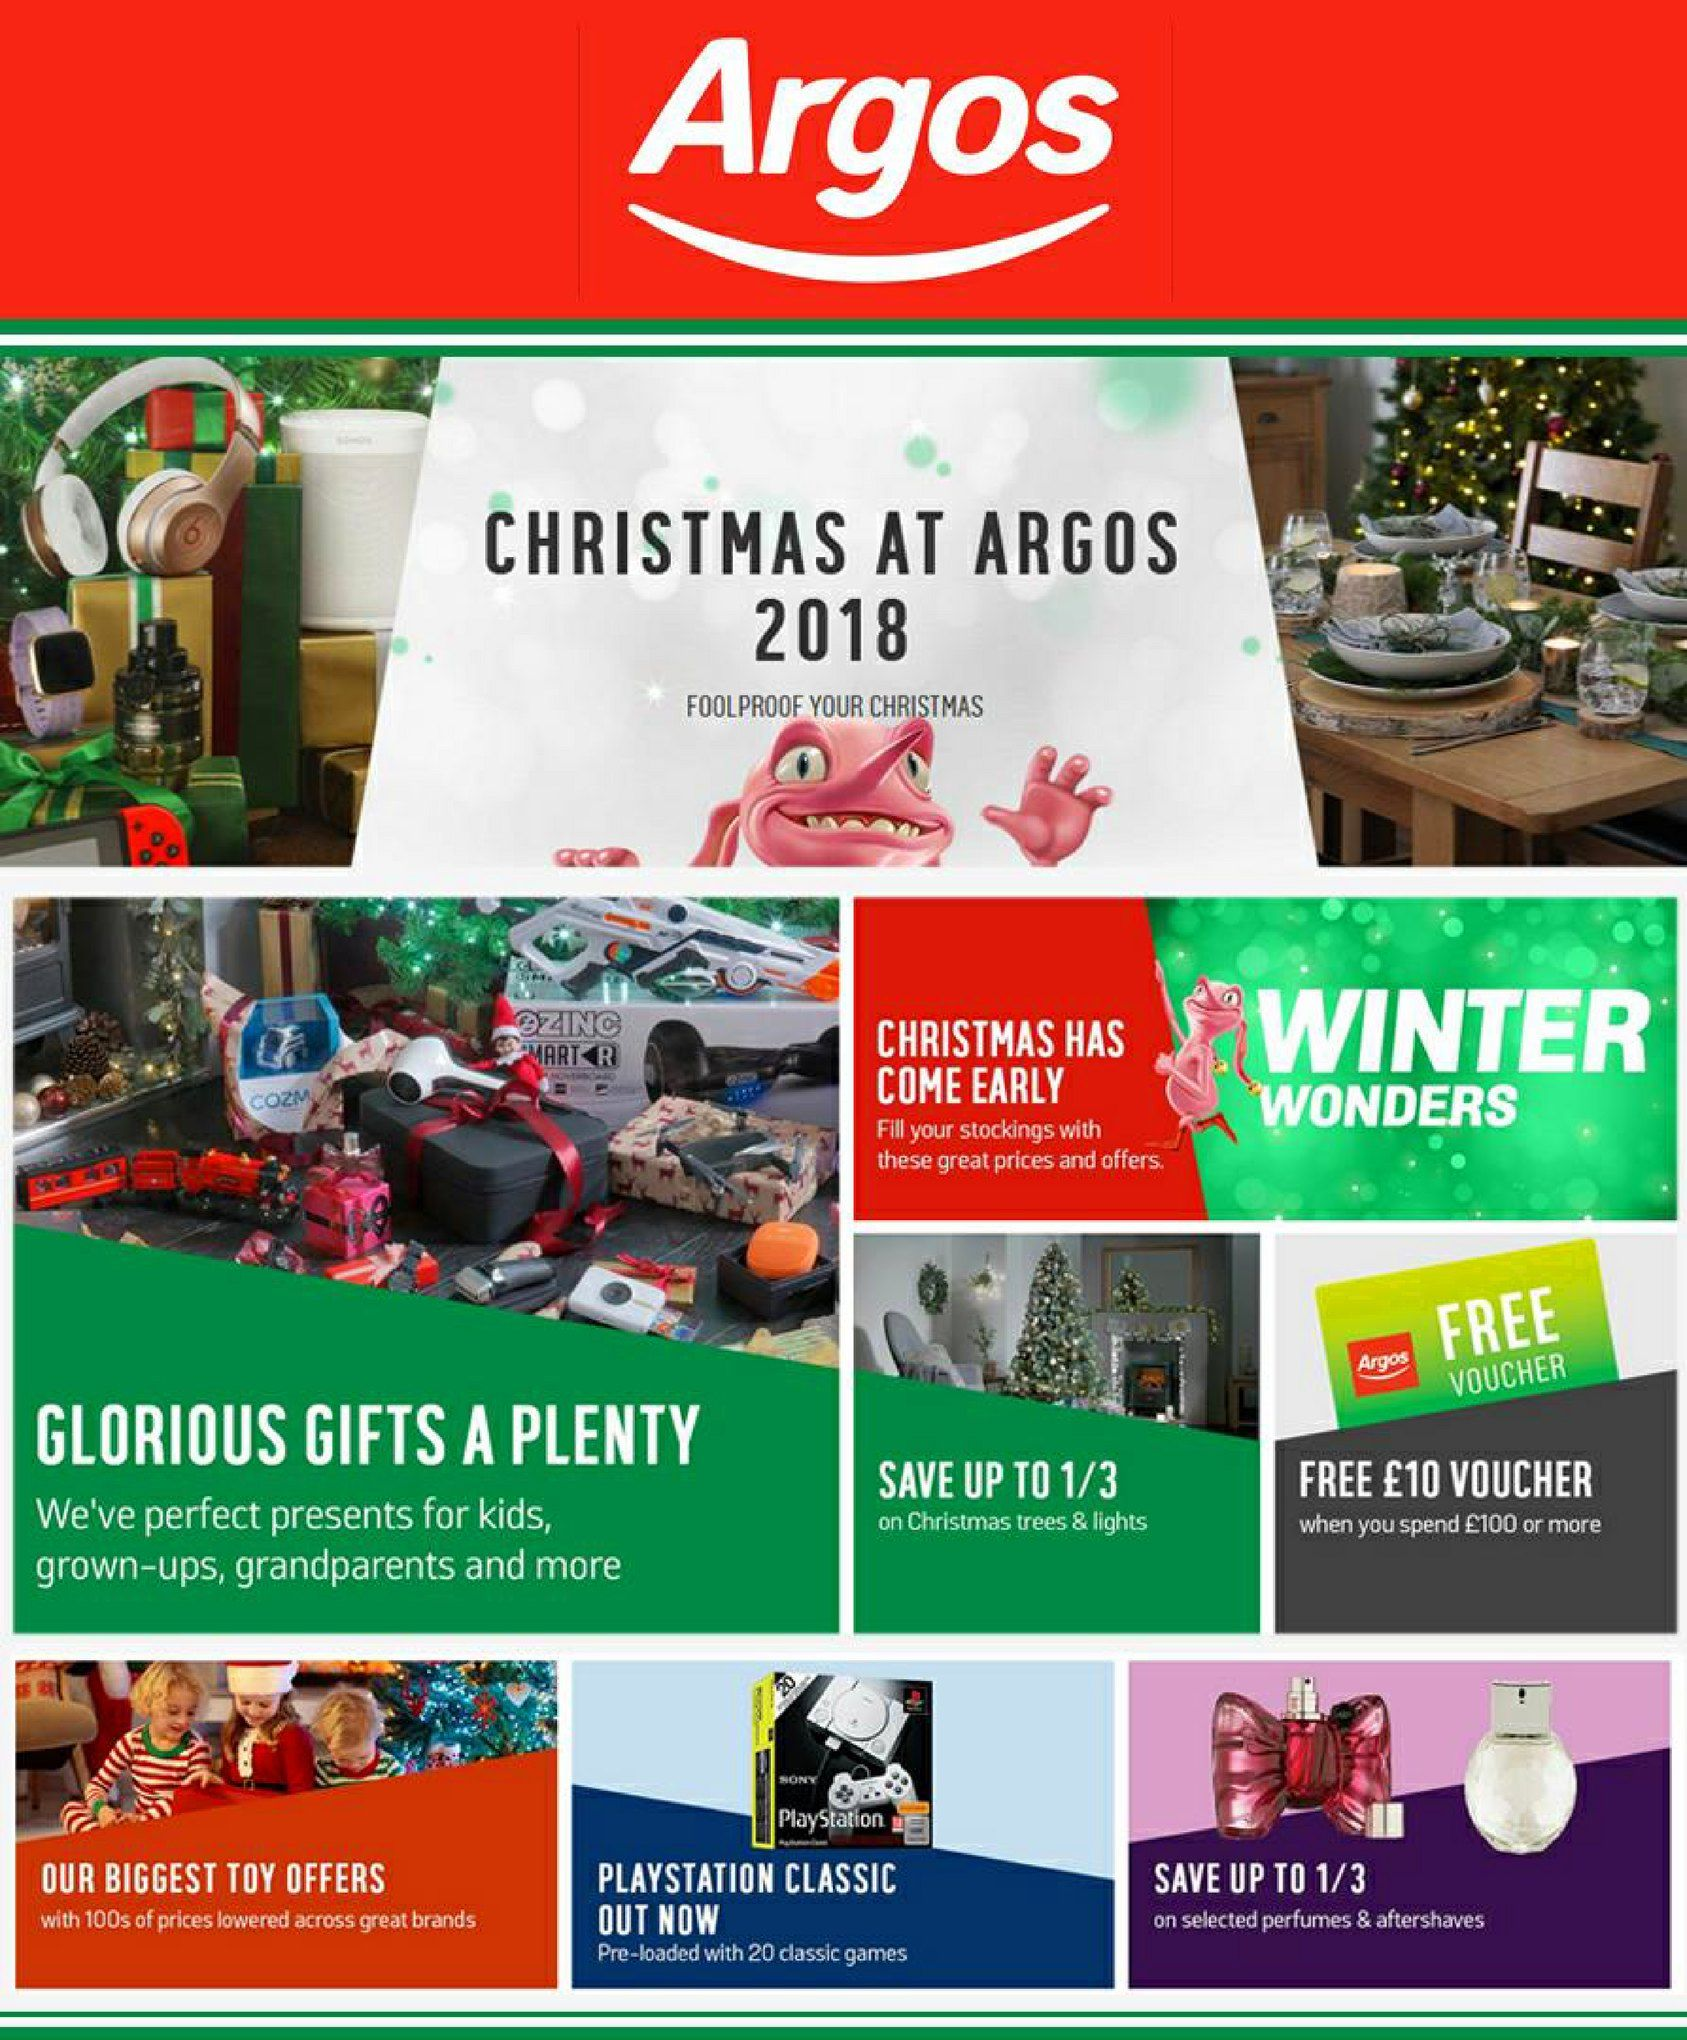 Pin by Olcatalogue co uk on United Kingdom's Latest Offers